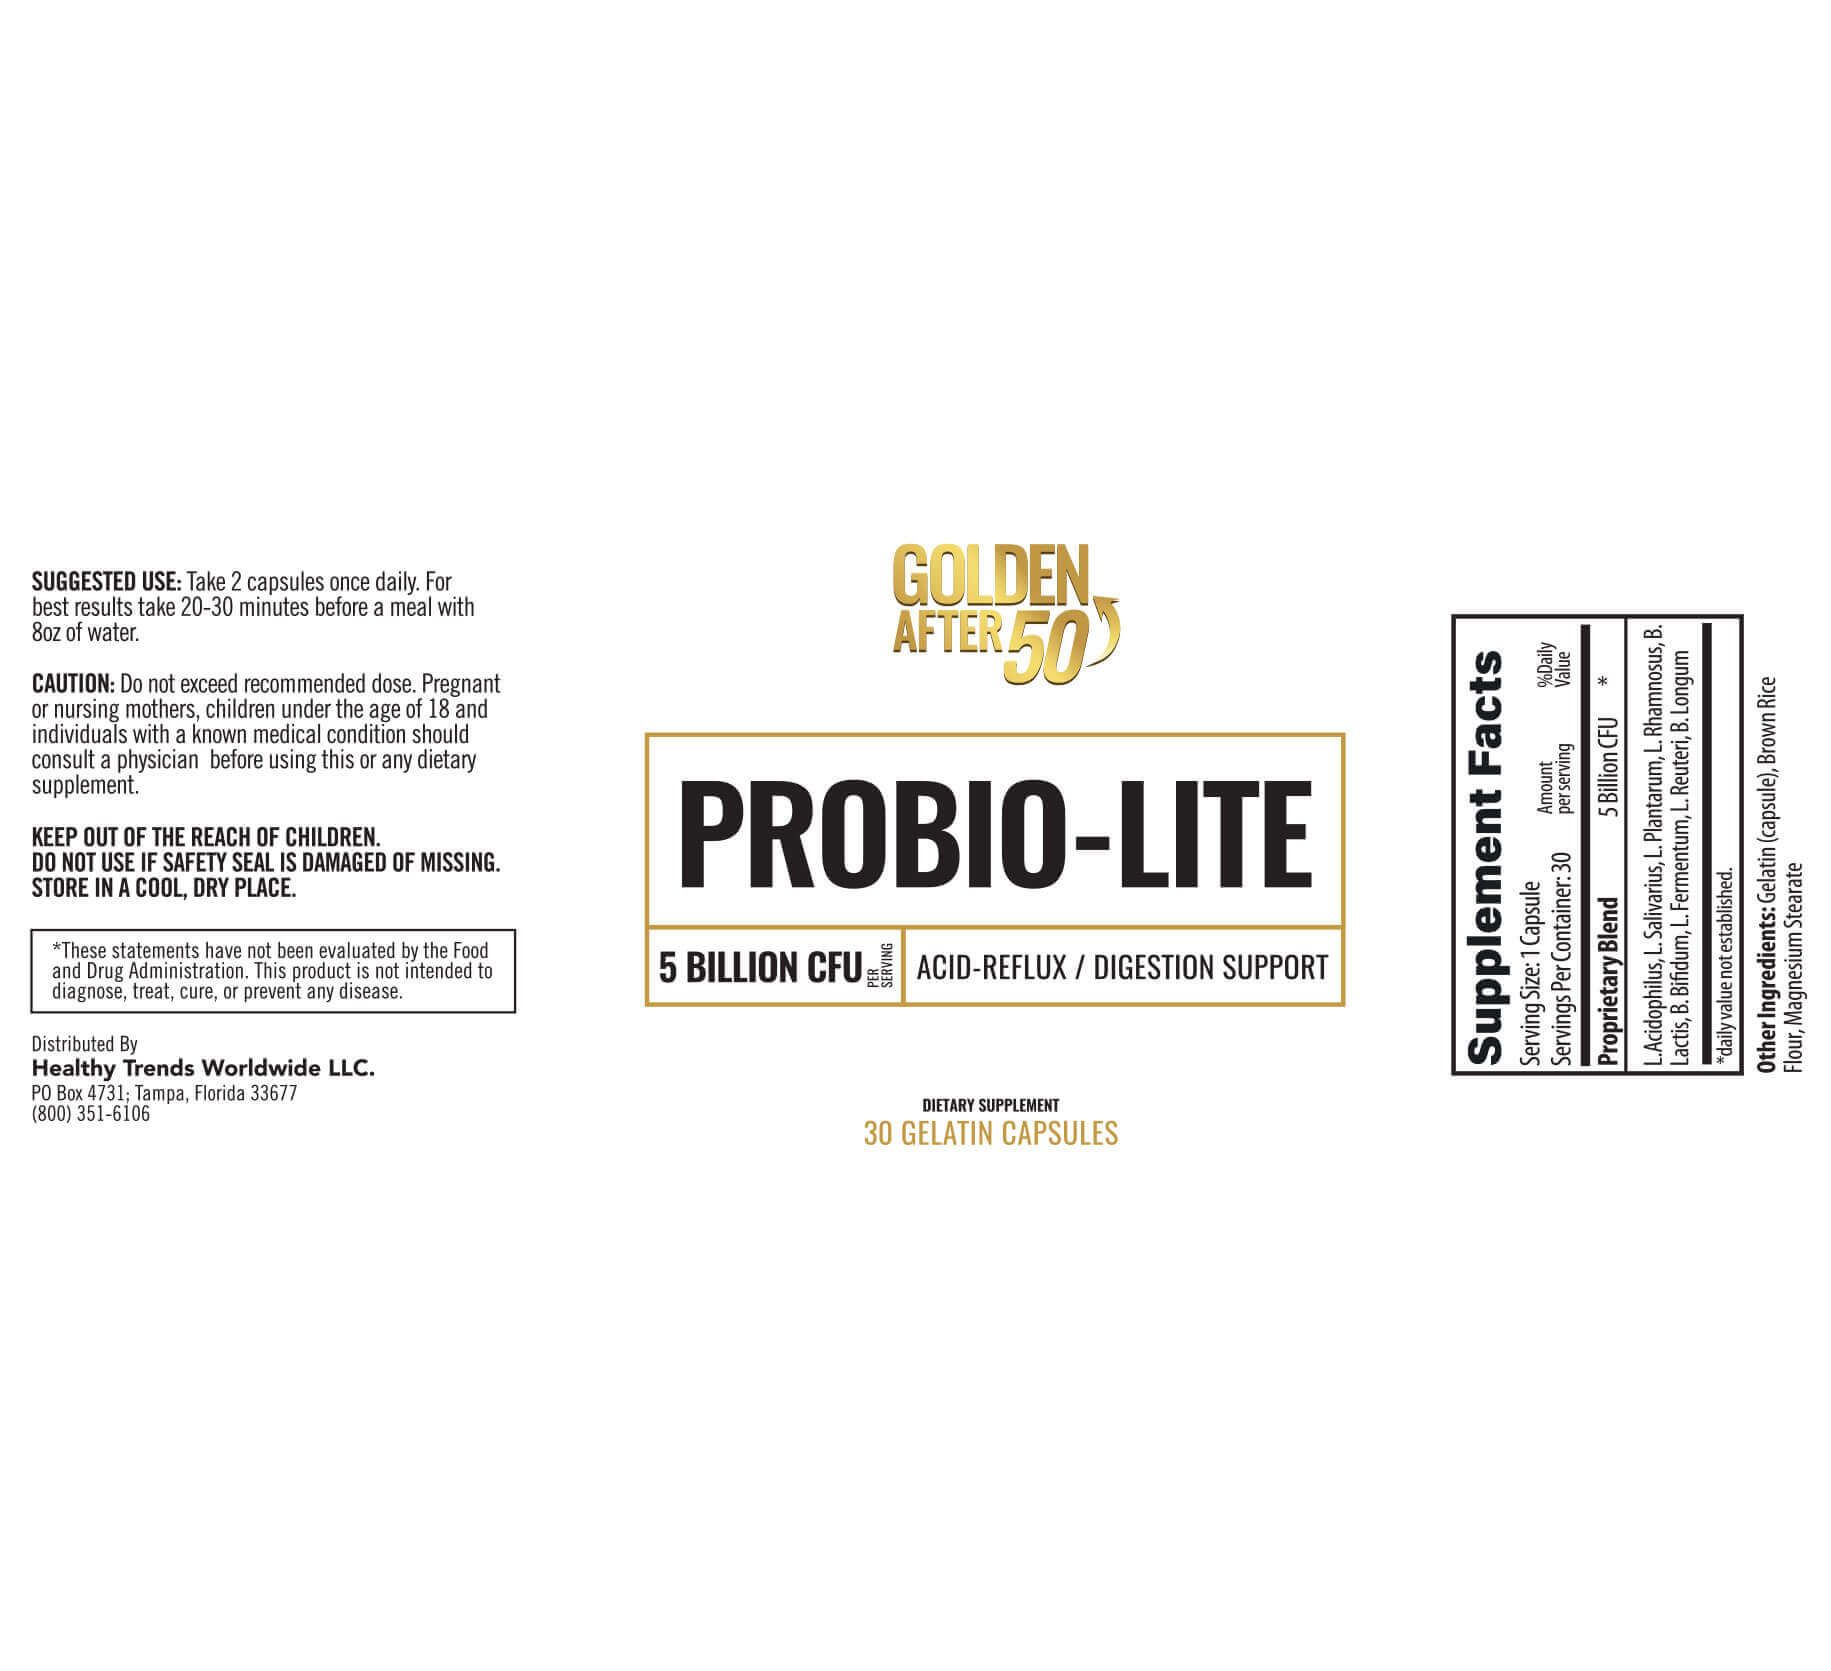 ProbioLite label of ingredients